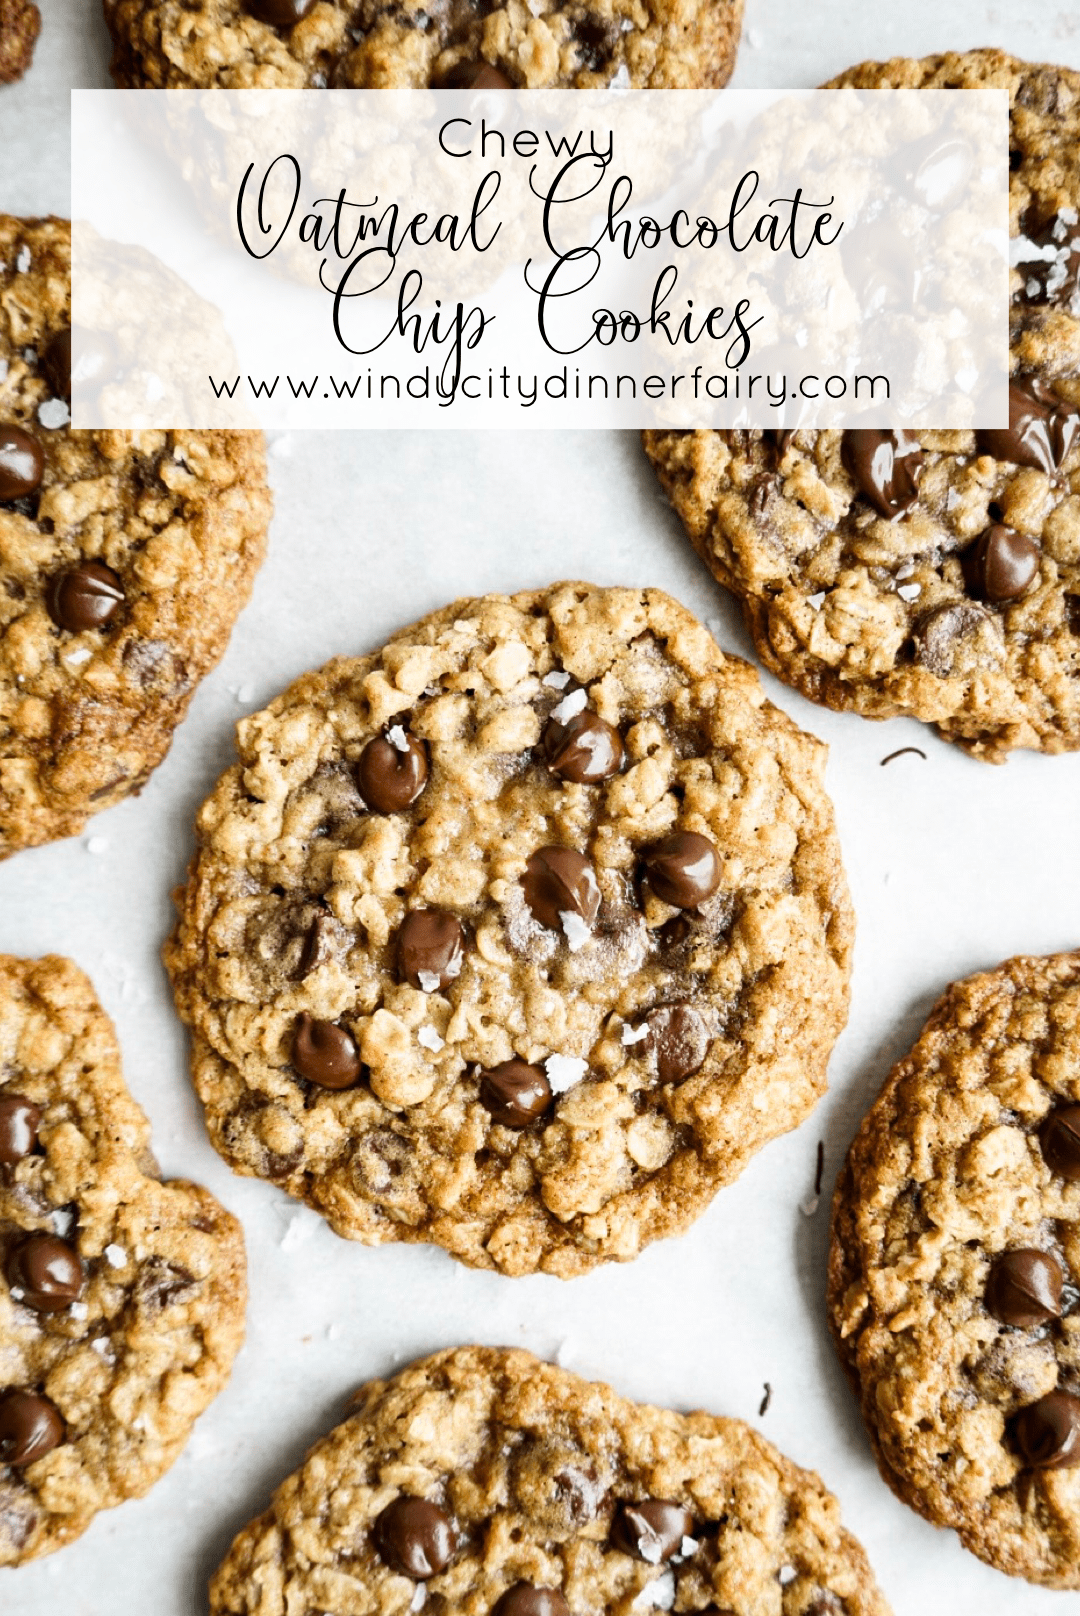 Chewy Oatmeal Chocolate Chip Cookies - The Windy City Dinner Fairy